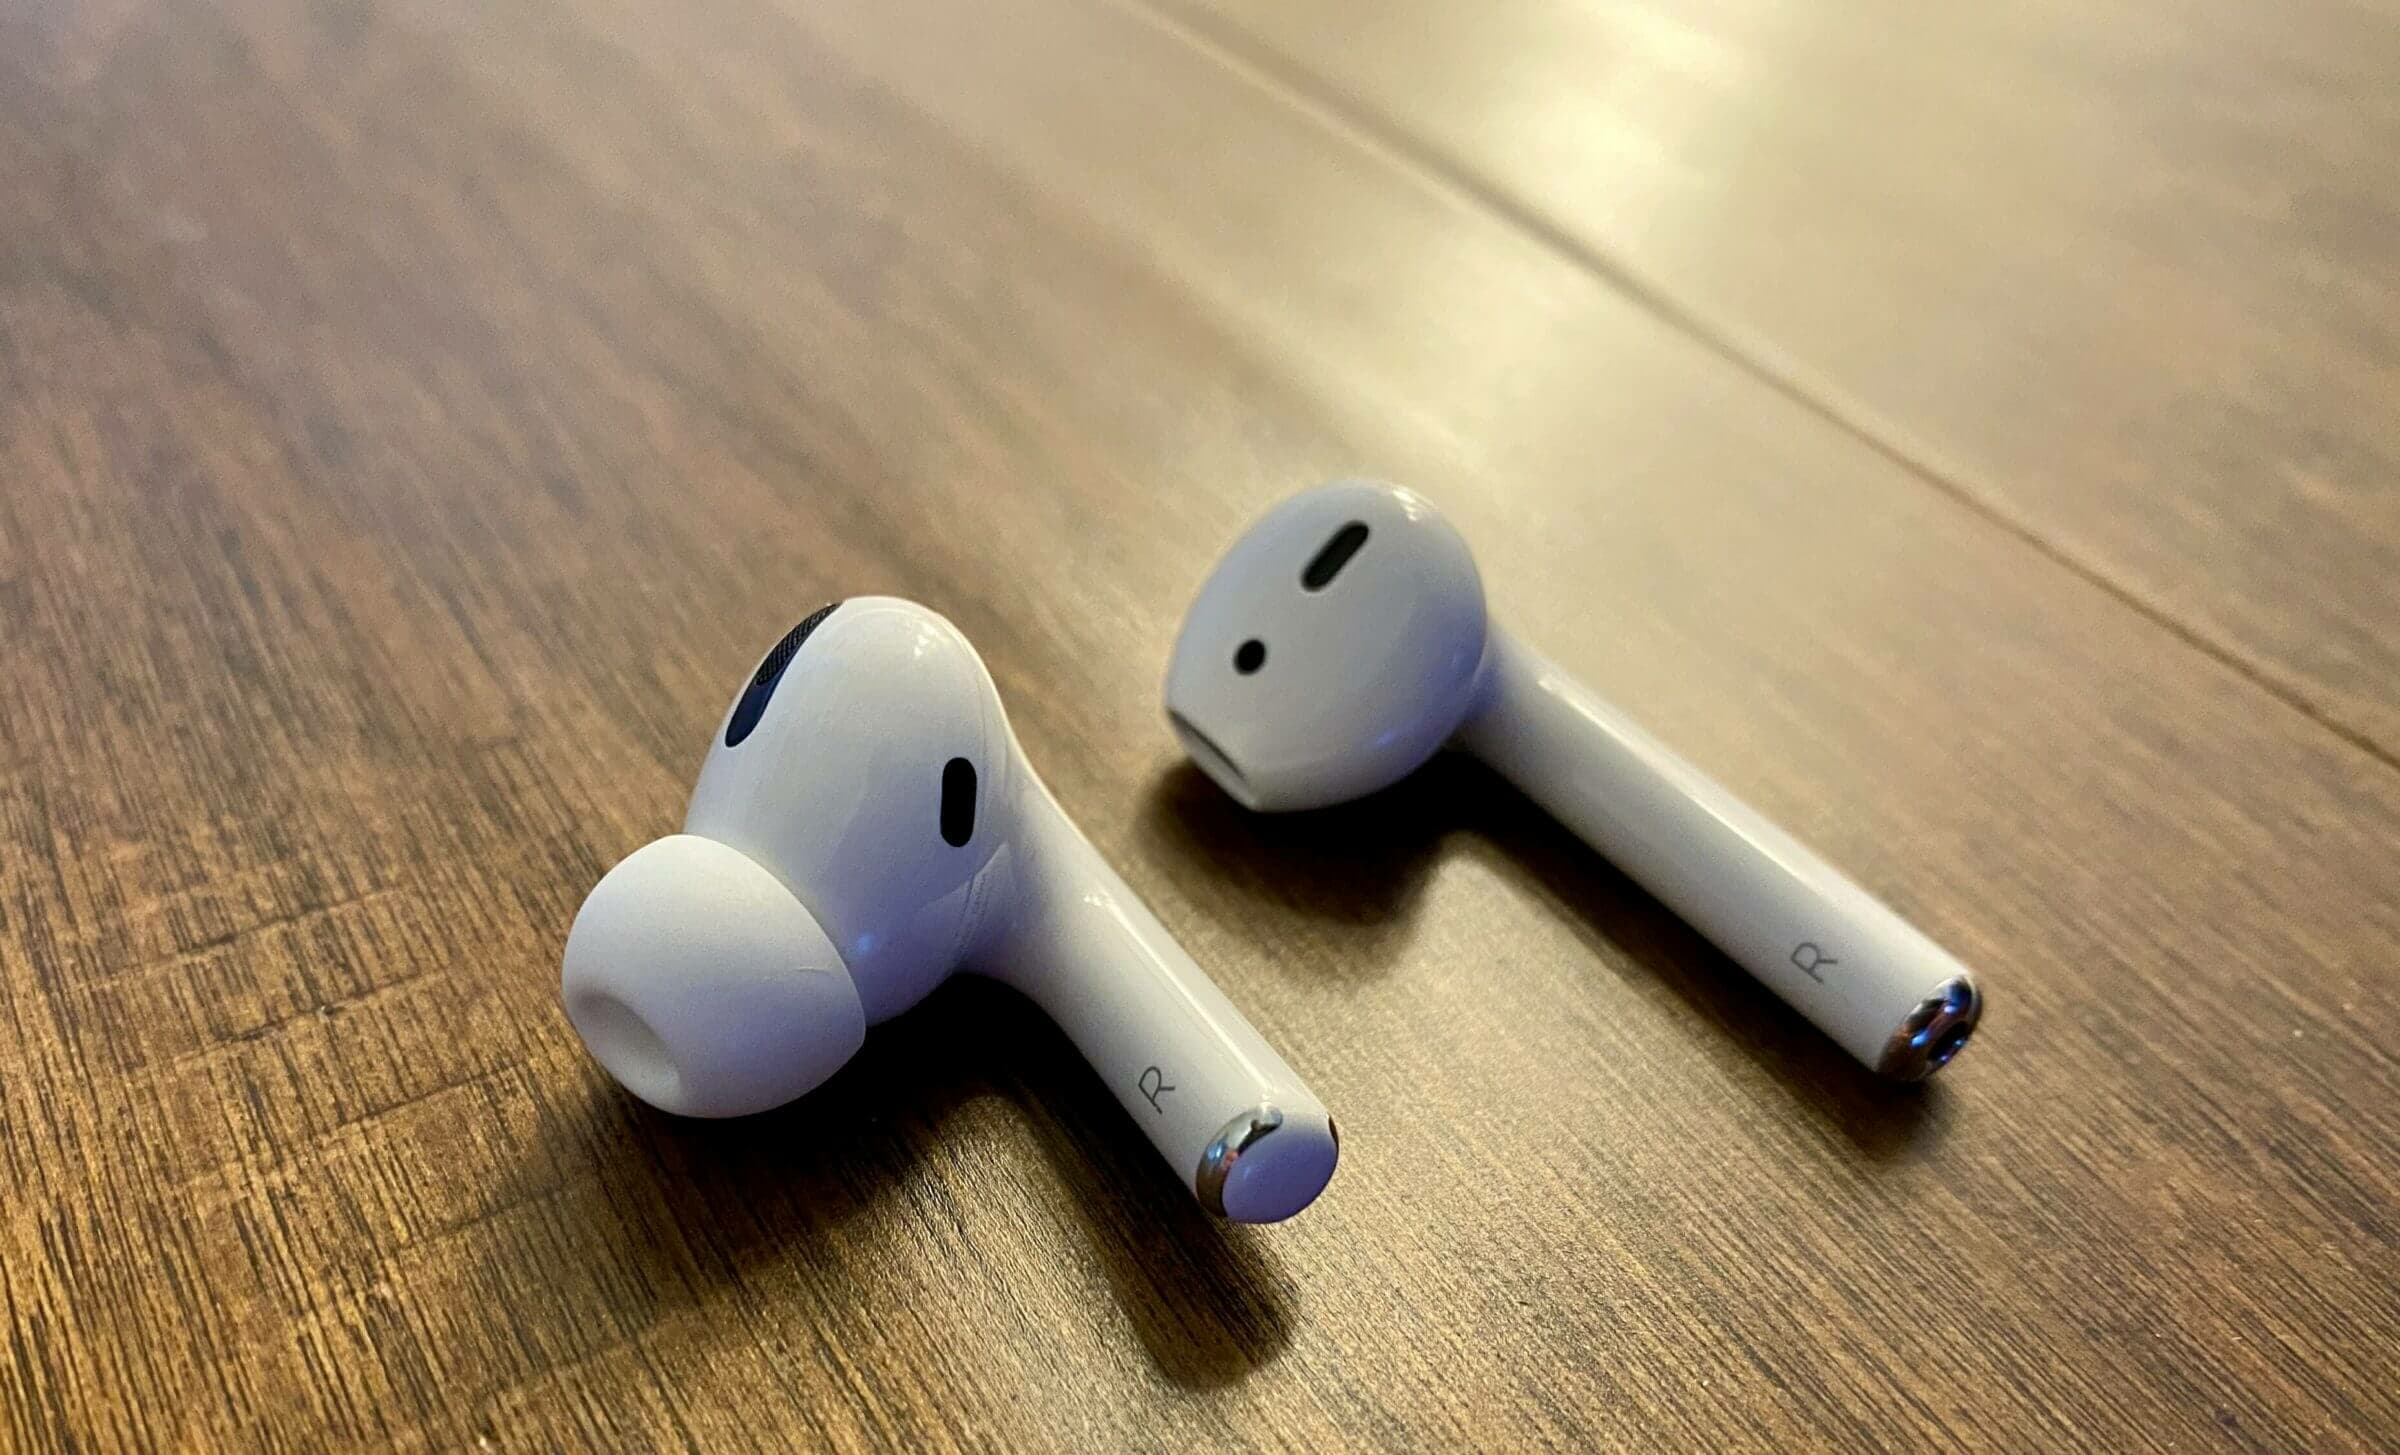 AirPods Pro Review and Comparison to Apple AirPods